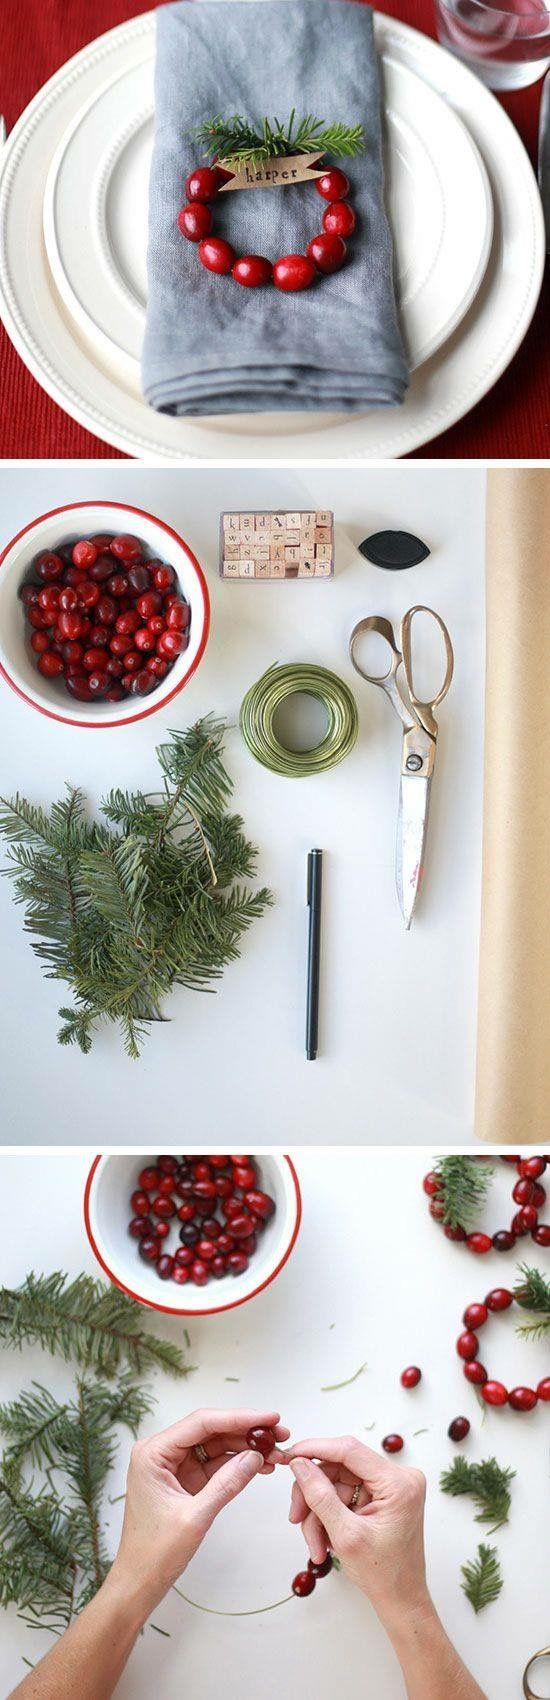 Cranberry wreath on place card